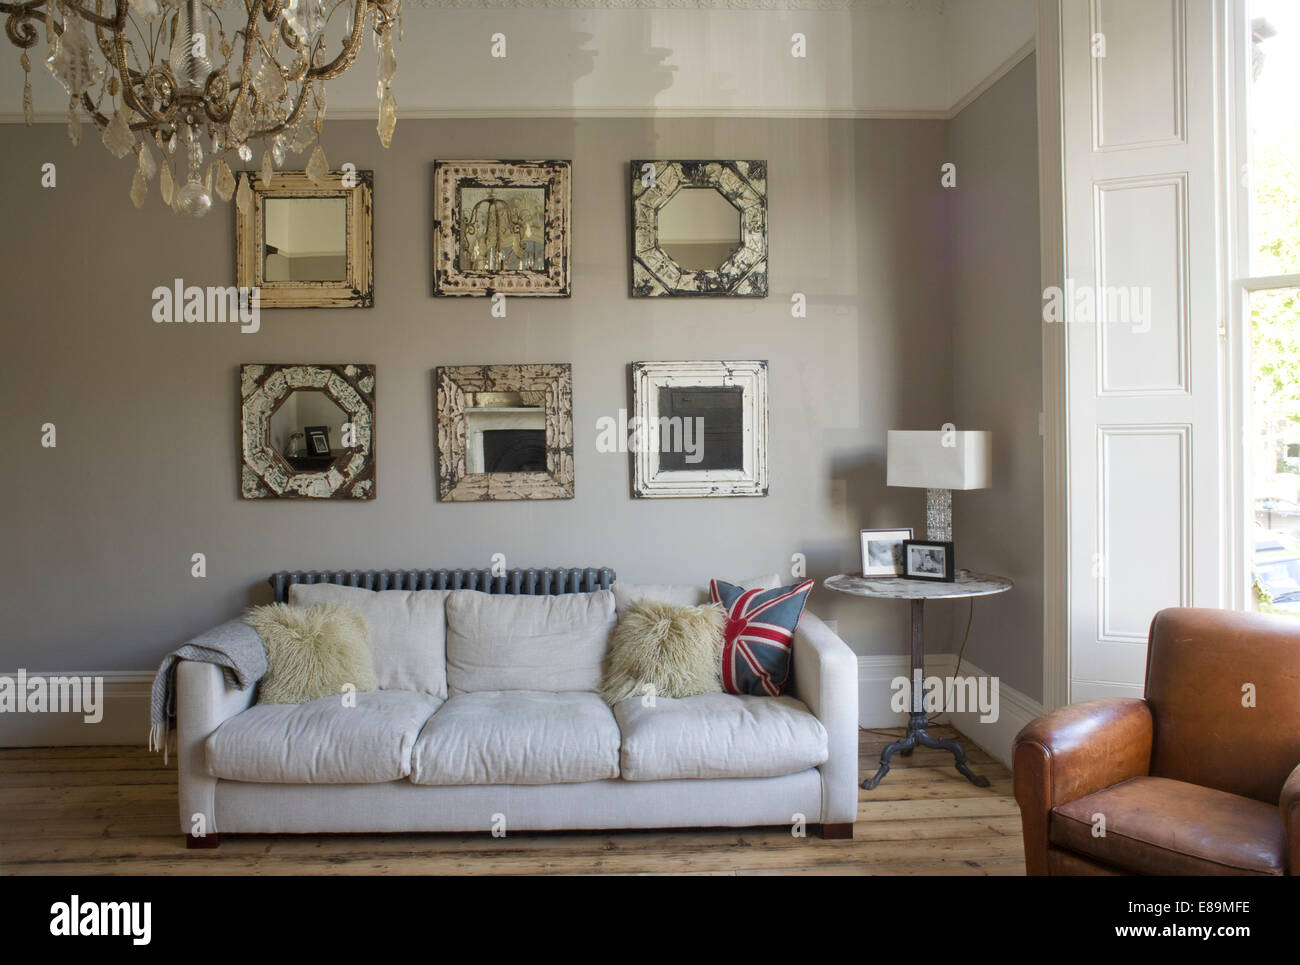 Collection Of Ornate Mirrors Above White Sofa In White Country Sitting Room